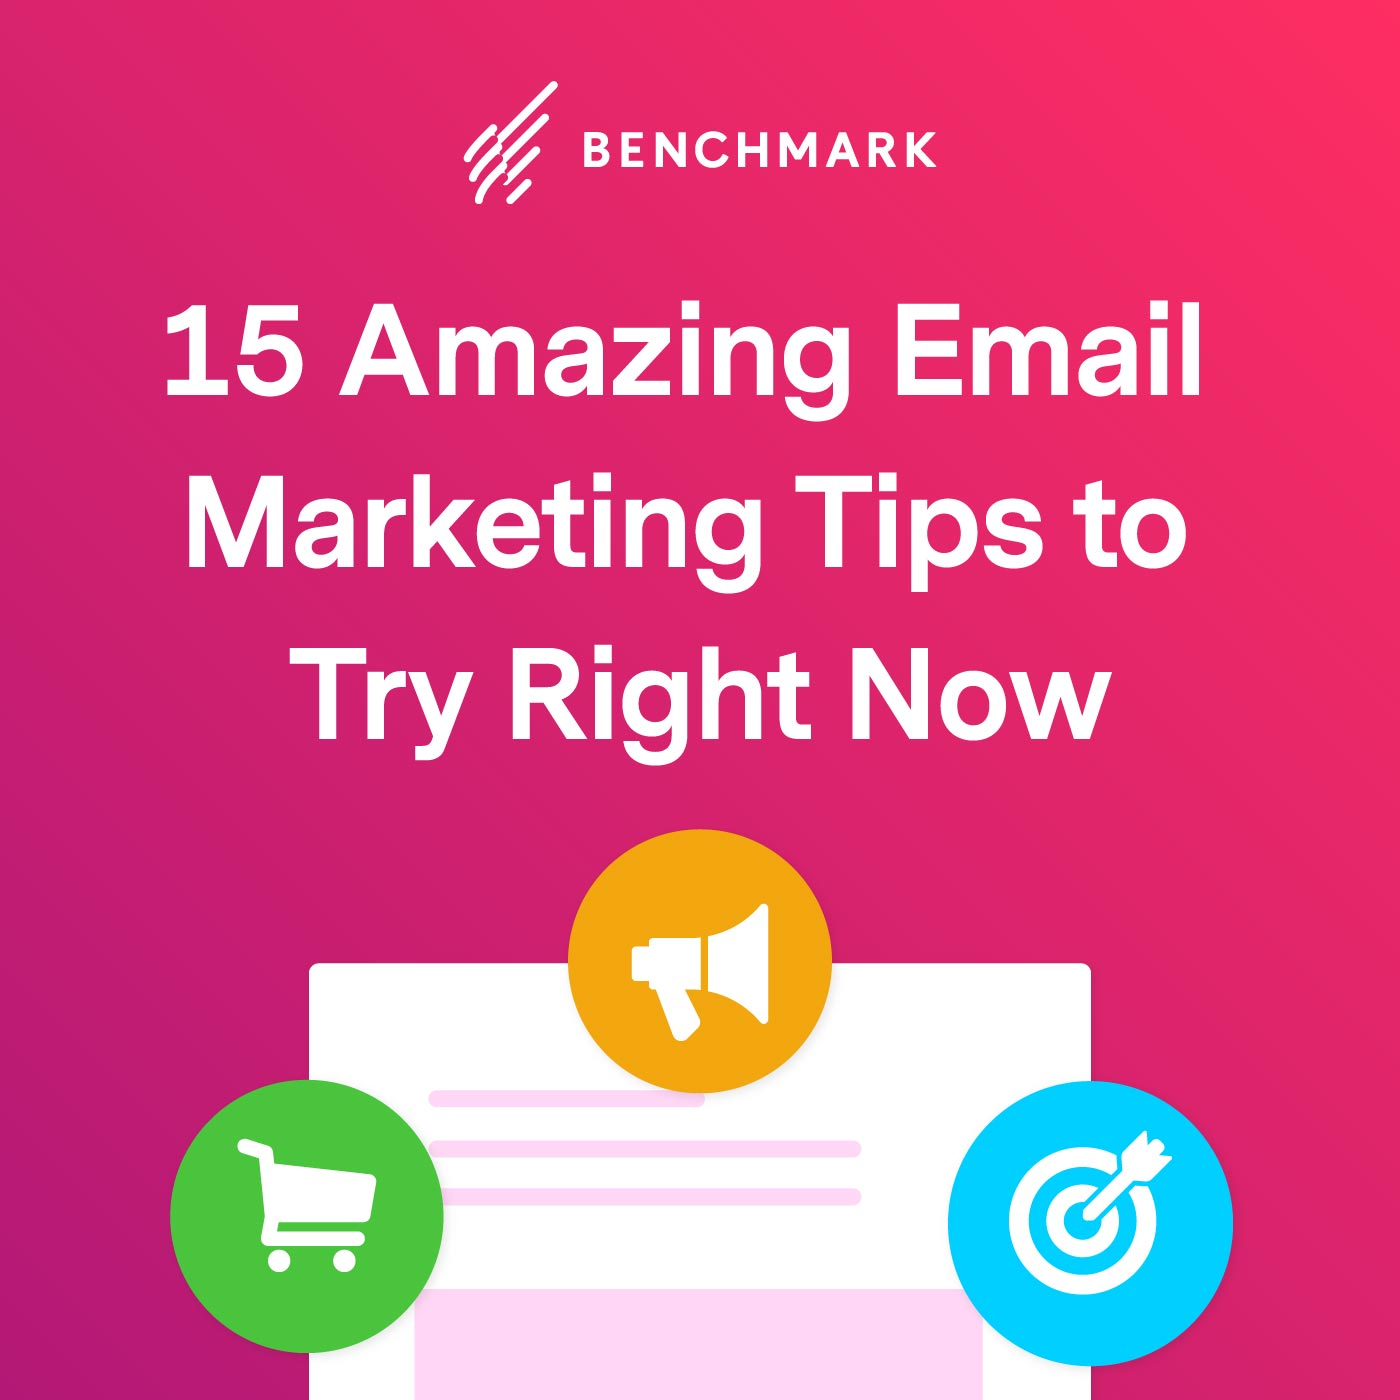 15 Amazing Email Marketing Tips to Try Right Now